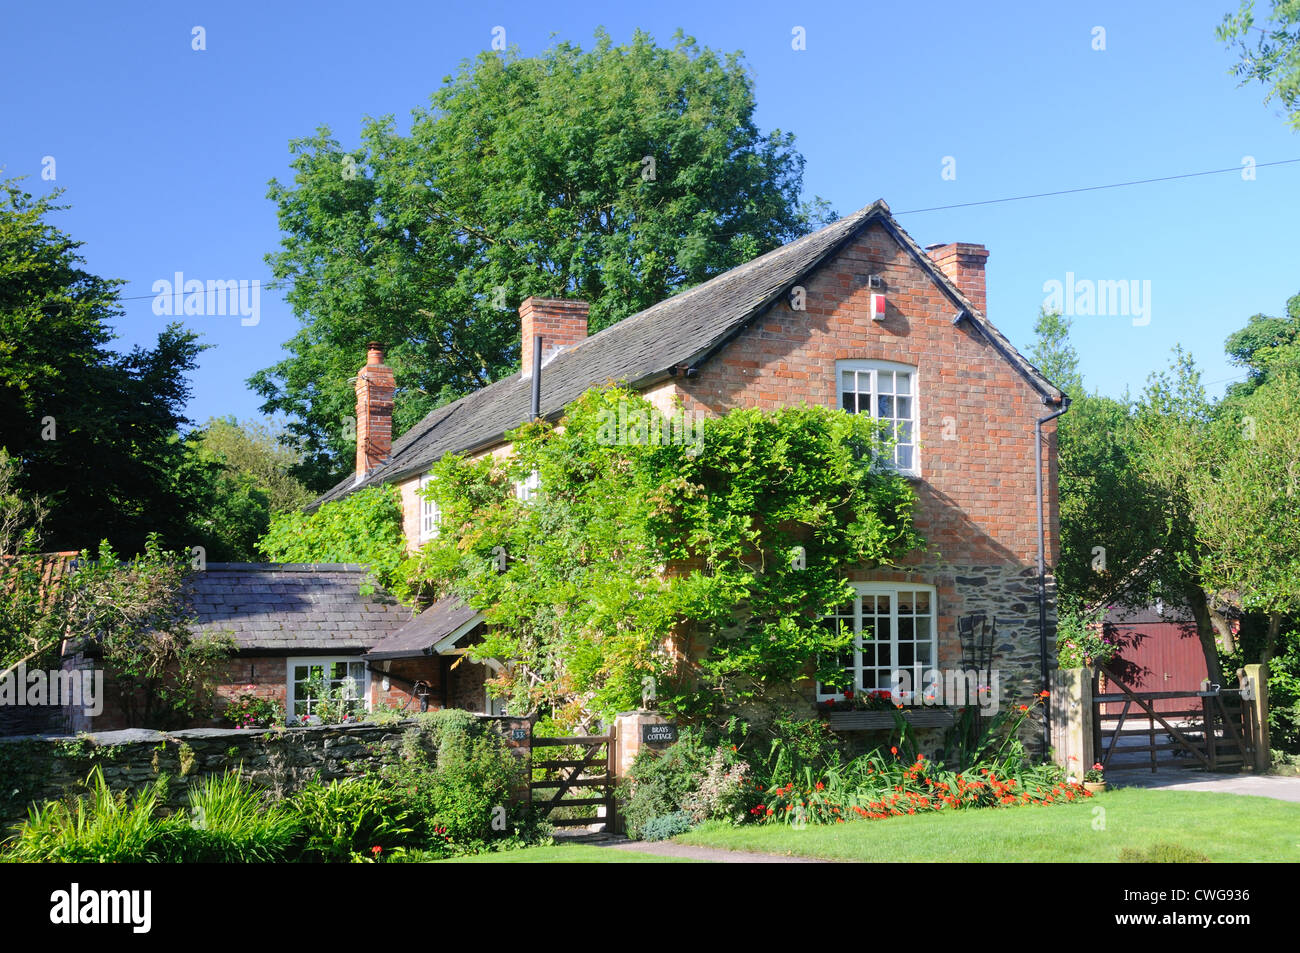 Brays Cottage, in Woodhouse, Leicestershire, England Stock Photo